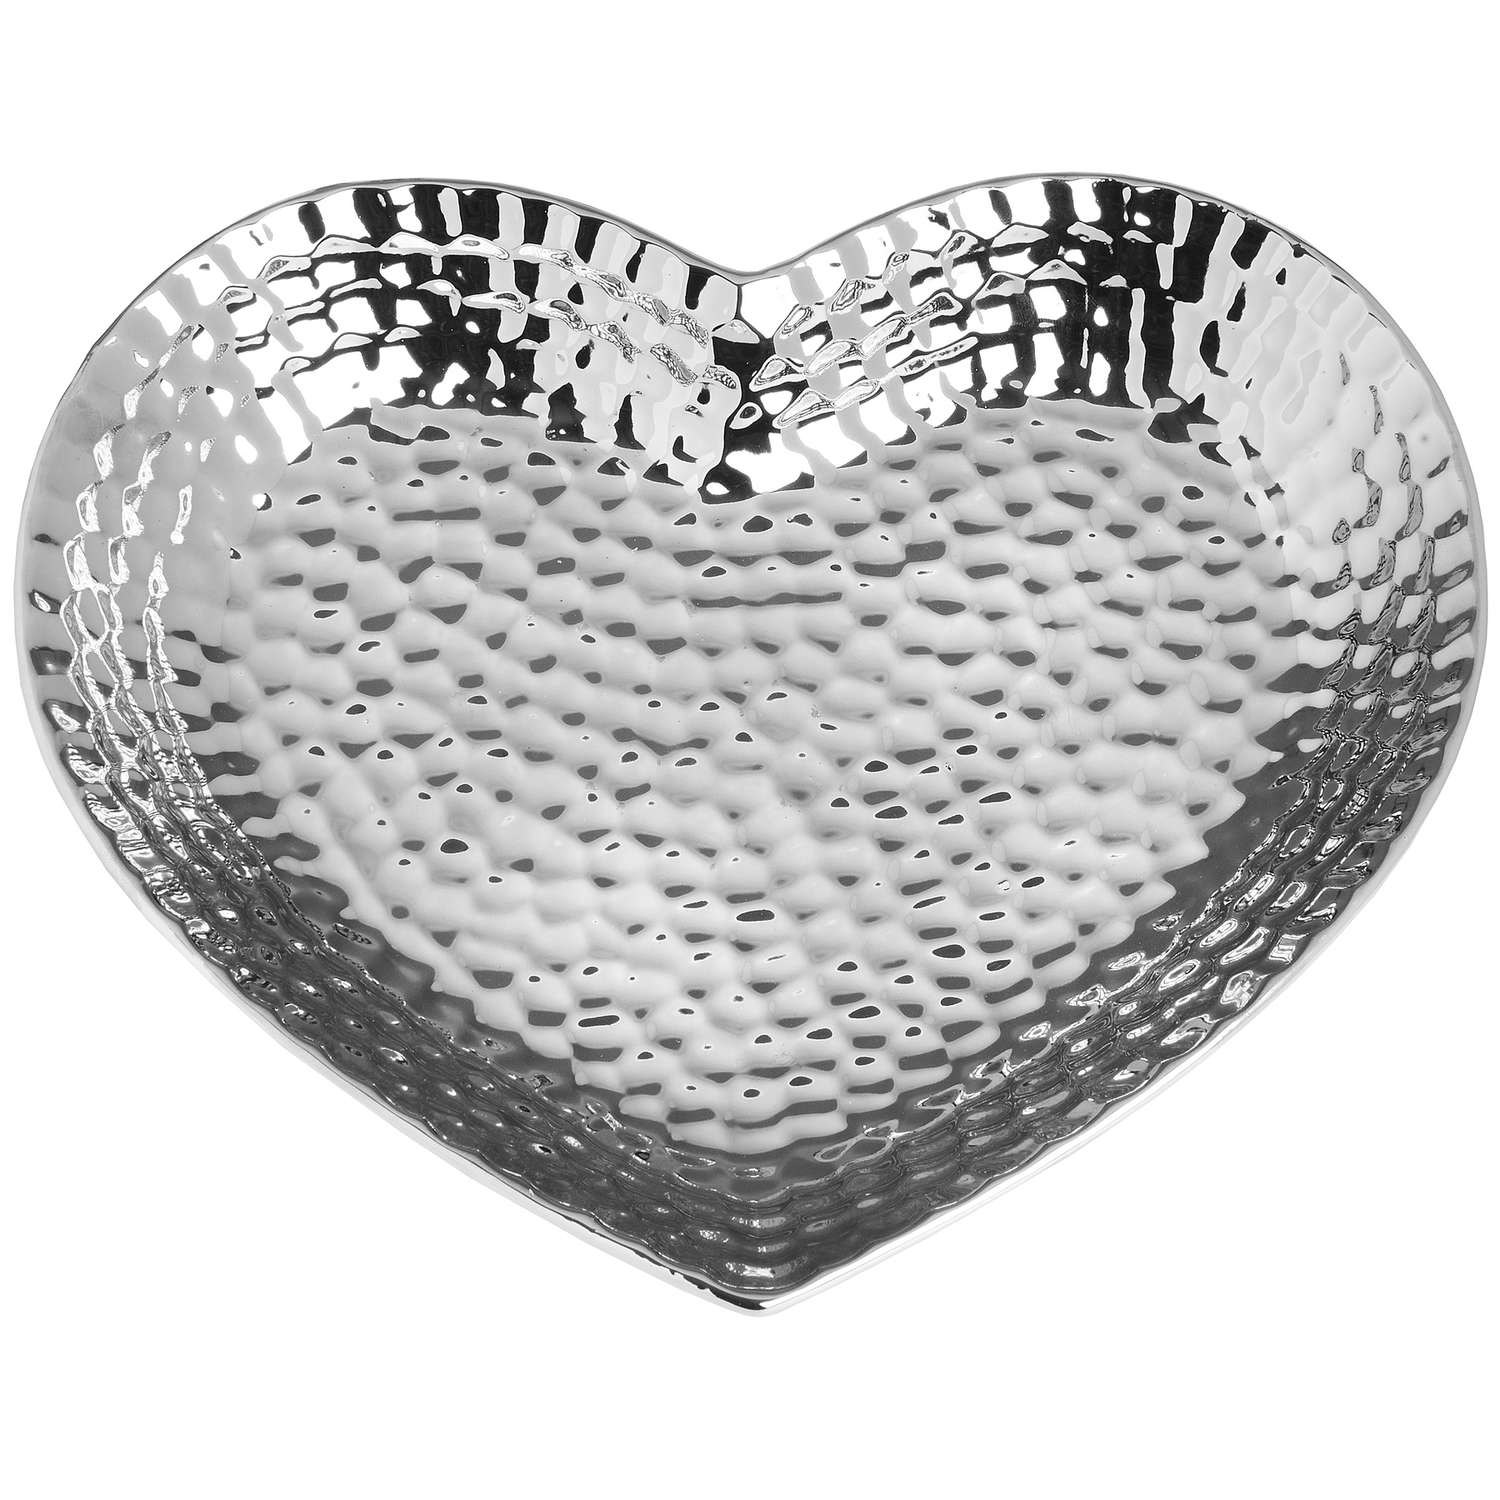 Large Heart Silver Ceramic Dish